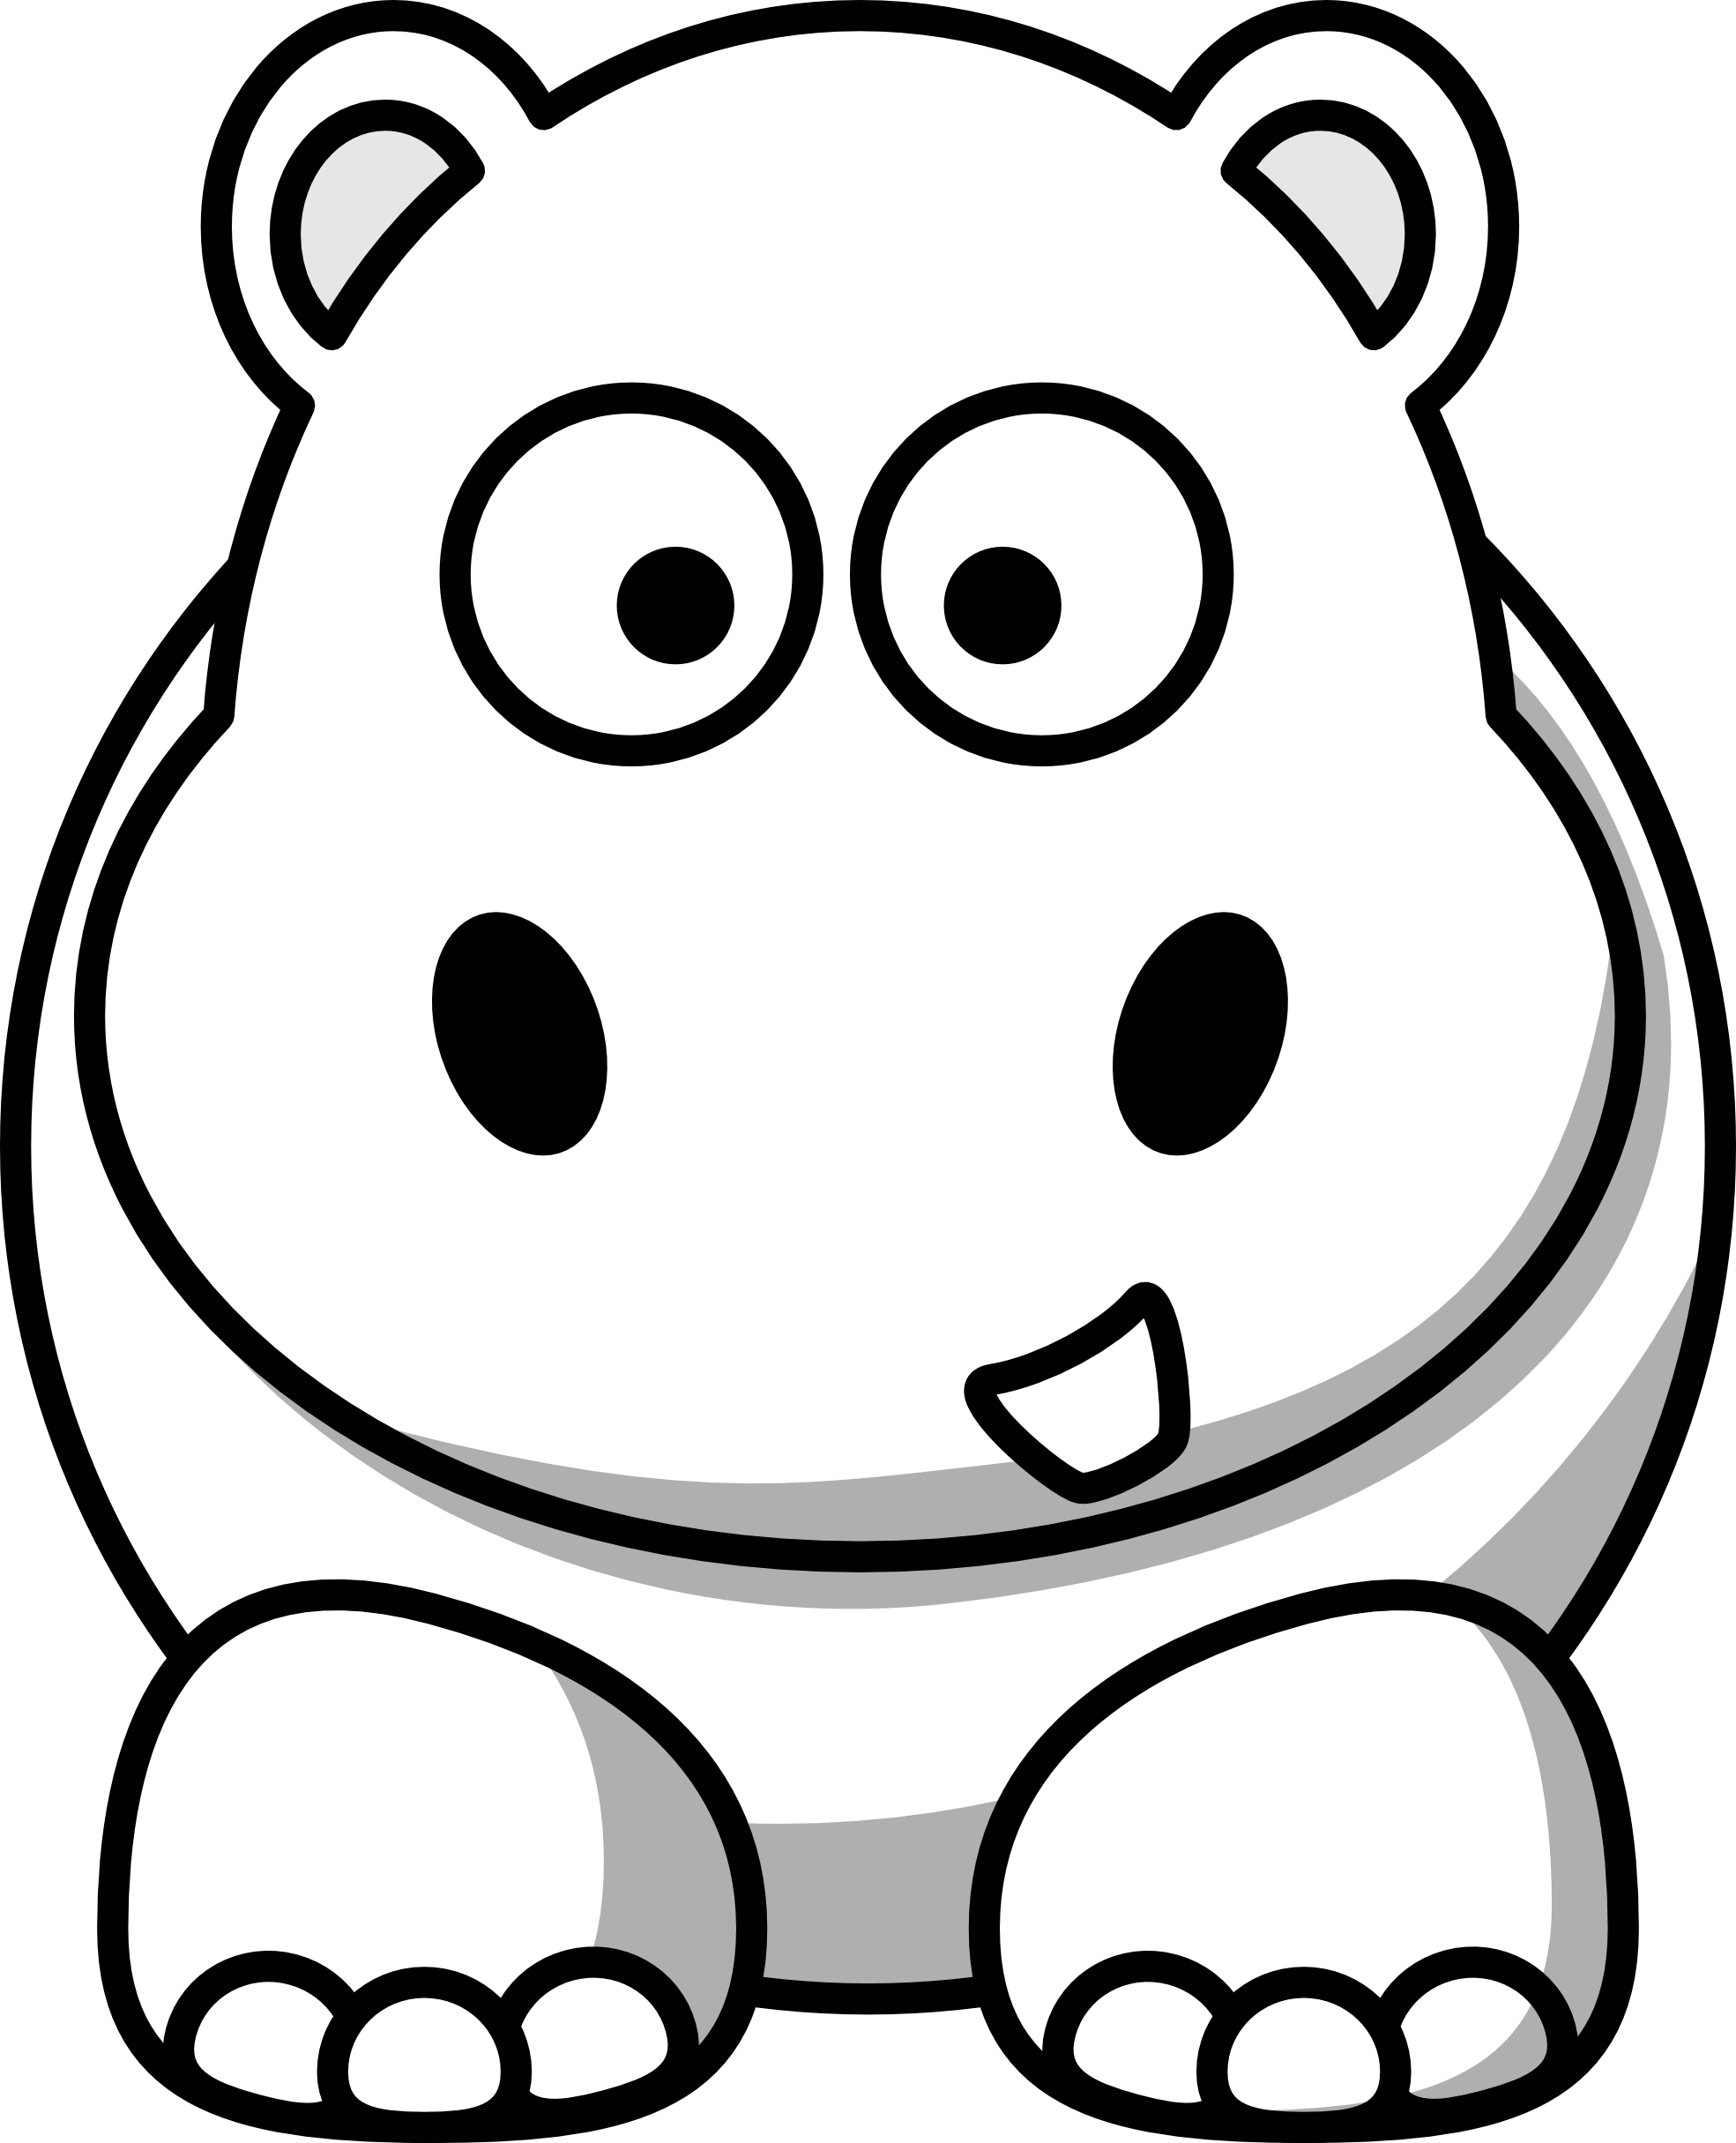 Clipart hippo female. Simple drawing at getdrawings